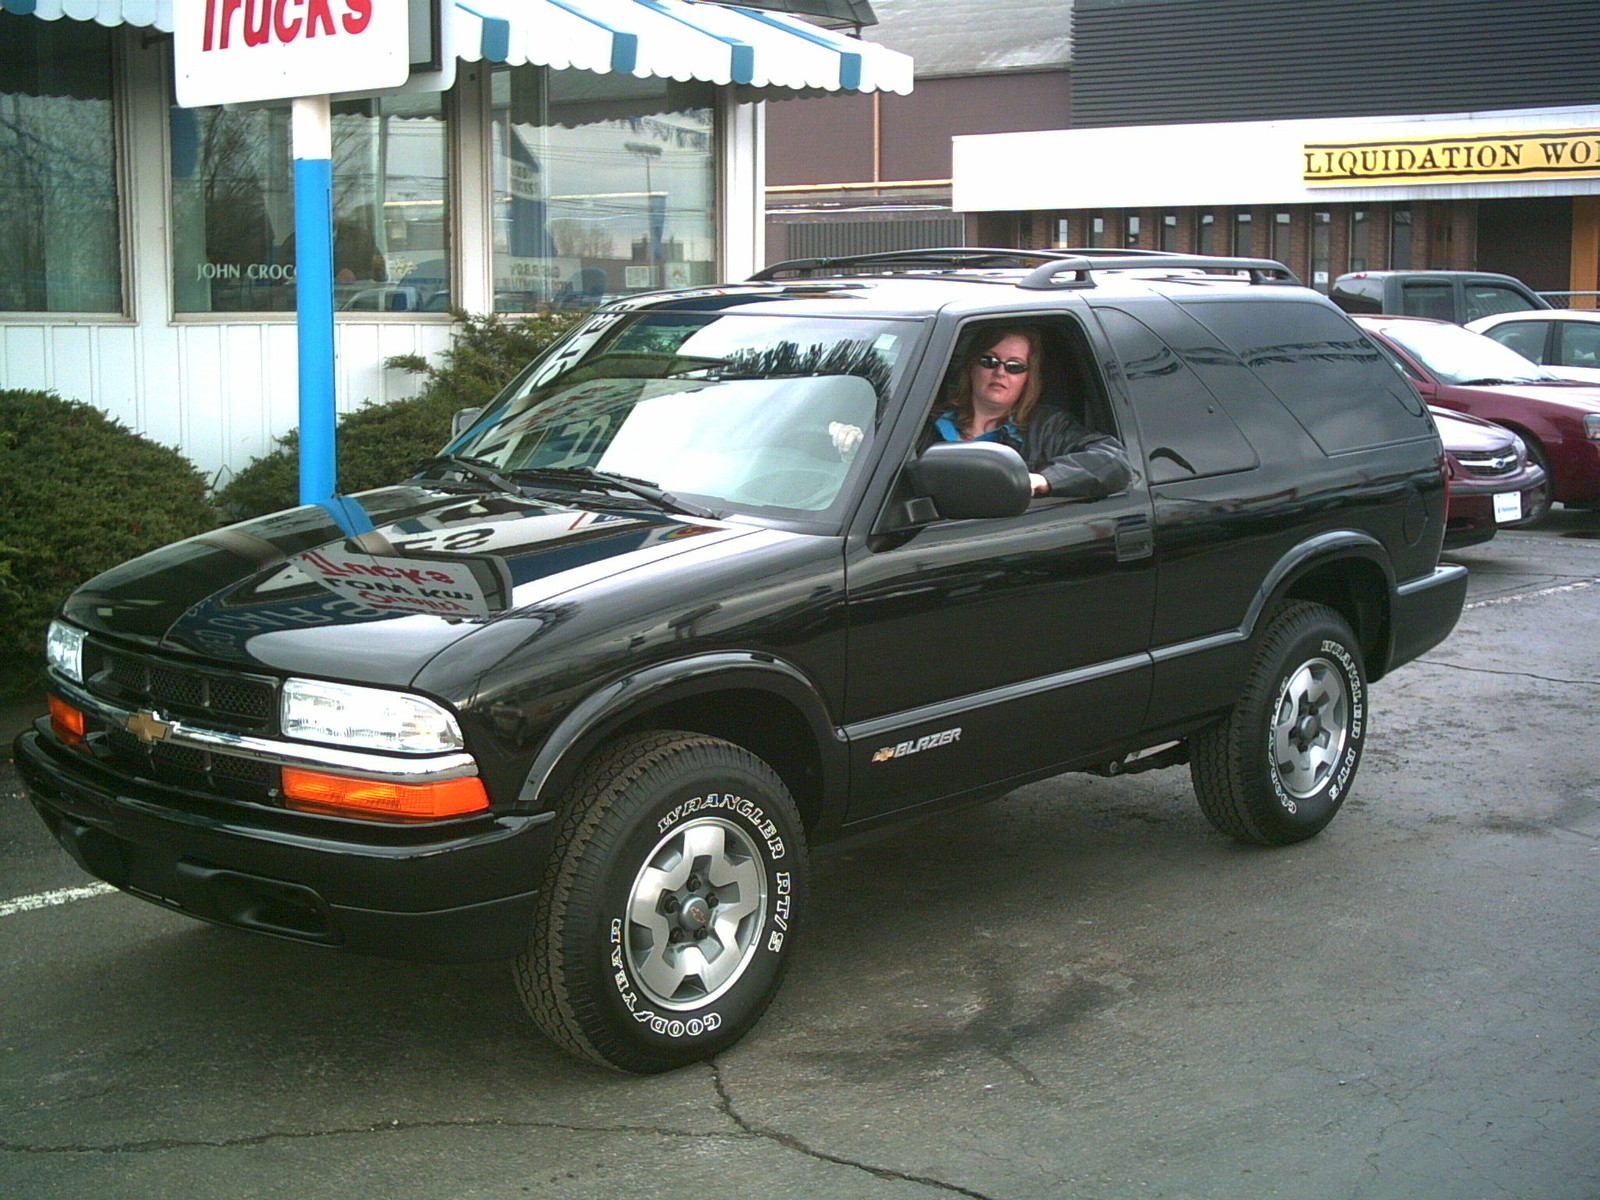 2005 chevrolet blazer - pictures